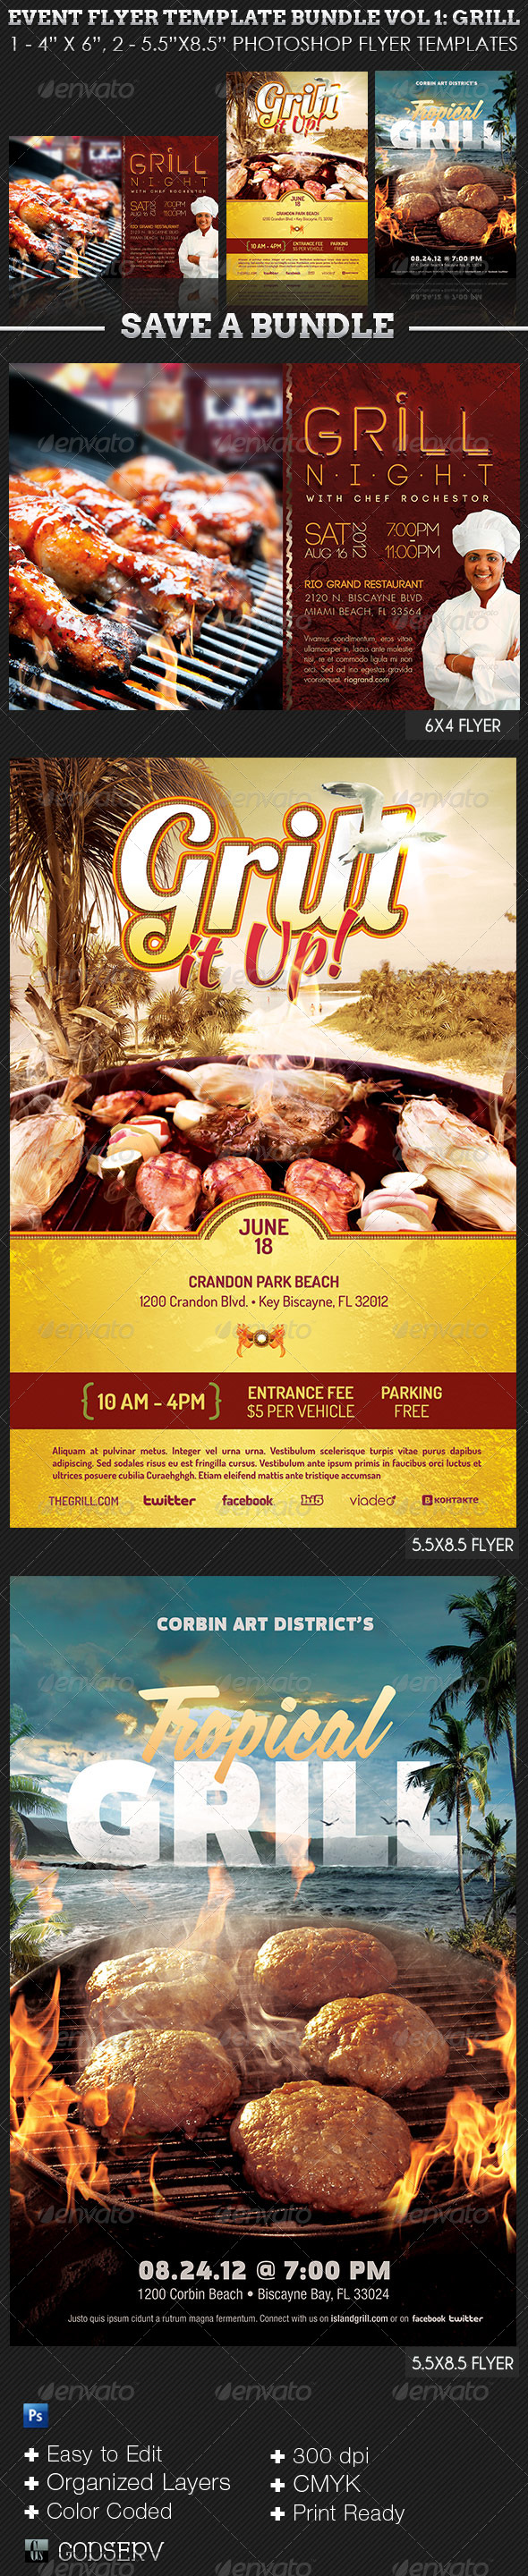 Barbeque Grilling Event Flyer Template Bundle - Events Flyers